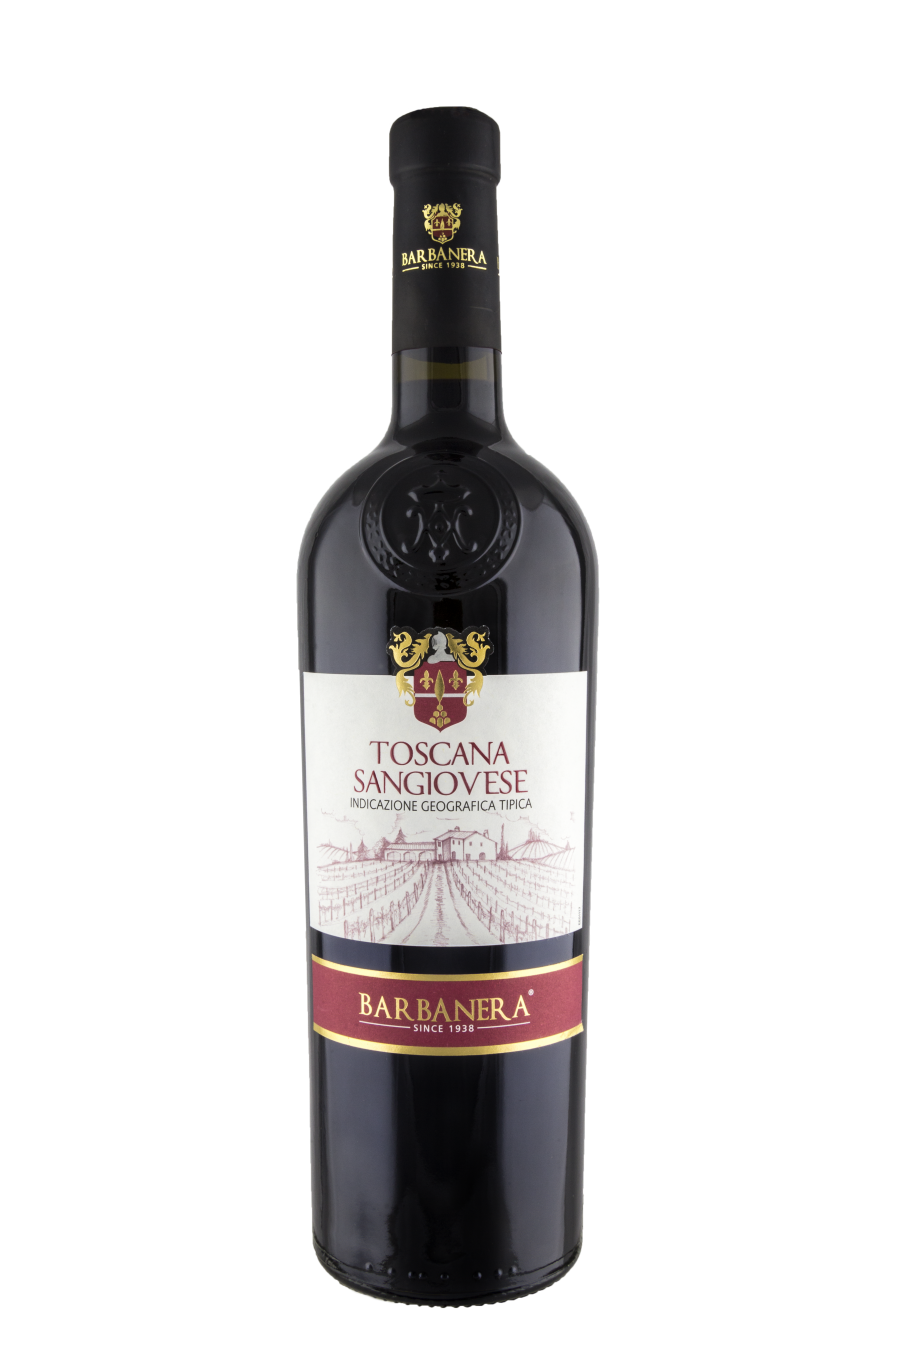 Toscana Sangiovese<br/><span>Barbanera Since 1938</span>